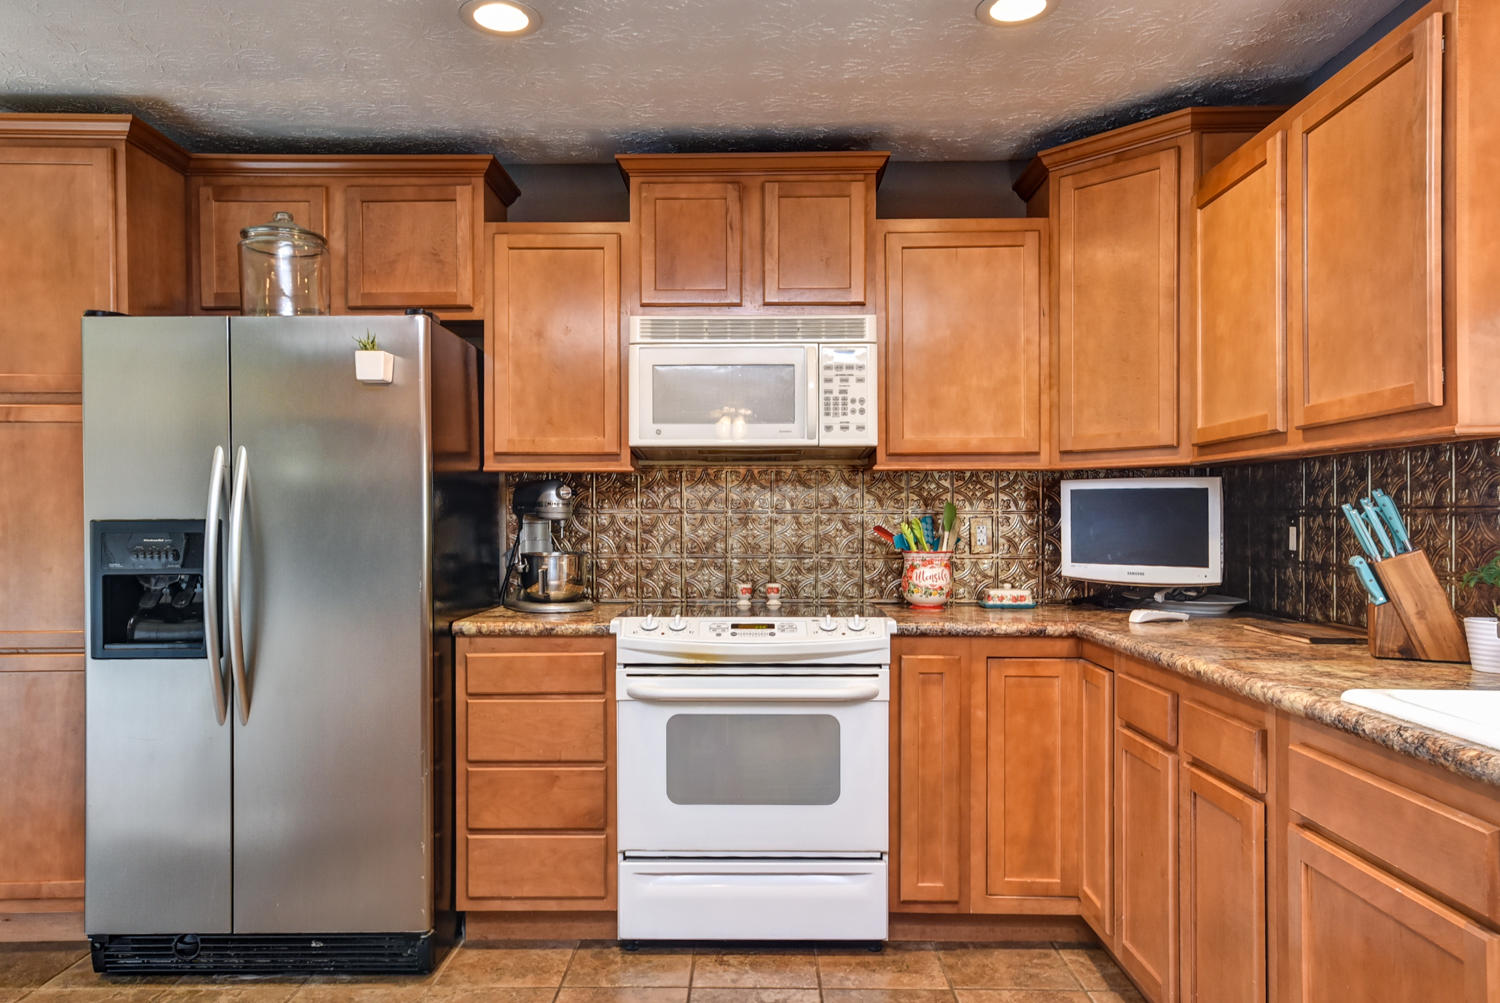 427 South Orchard Crest Avenue Springfield, MO 65802